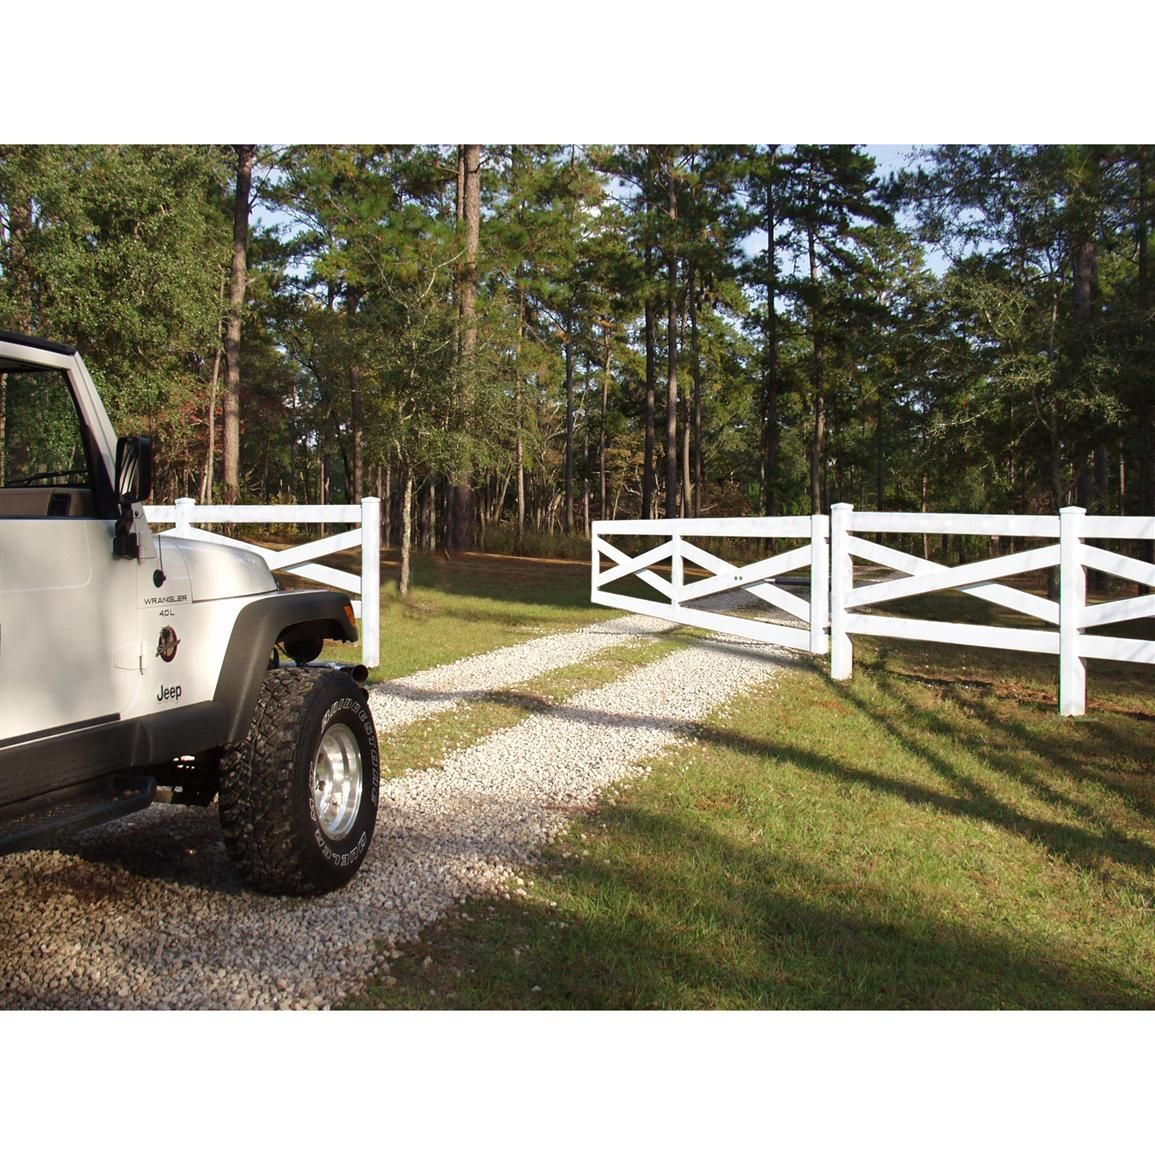 Mighty Mule R Outfitter S Choice Automatic Gate Opener